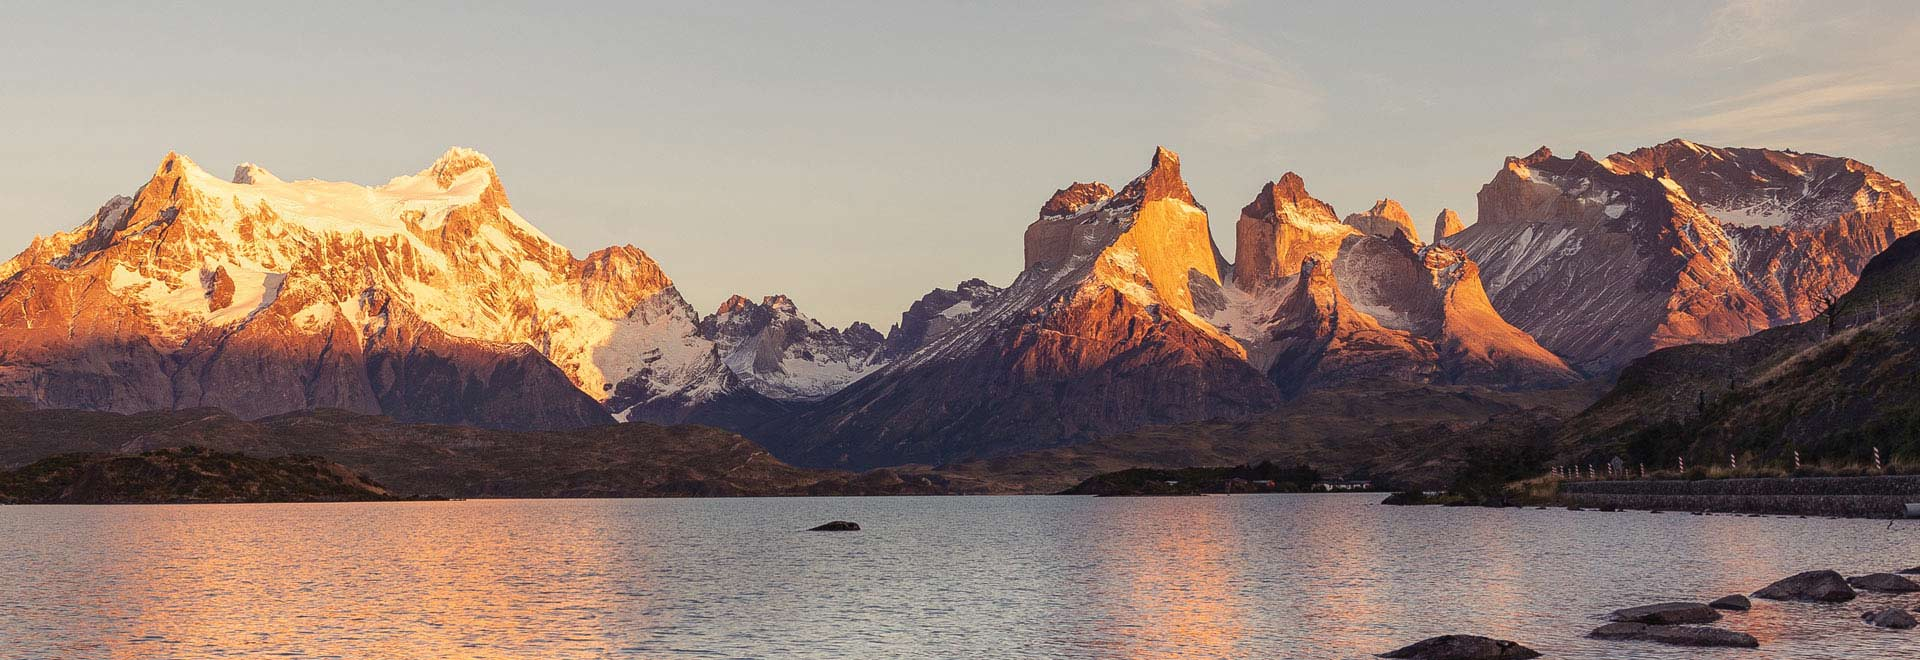 Wings Over World Chile Torres del Paine m